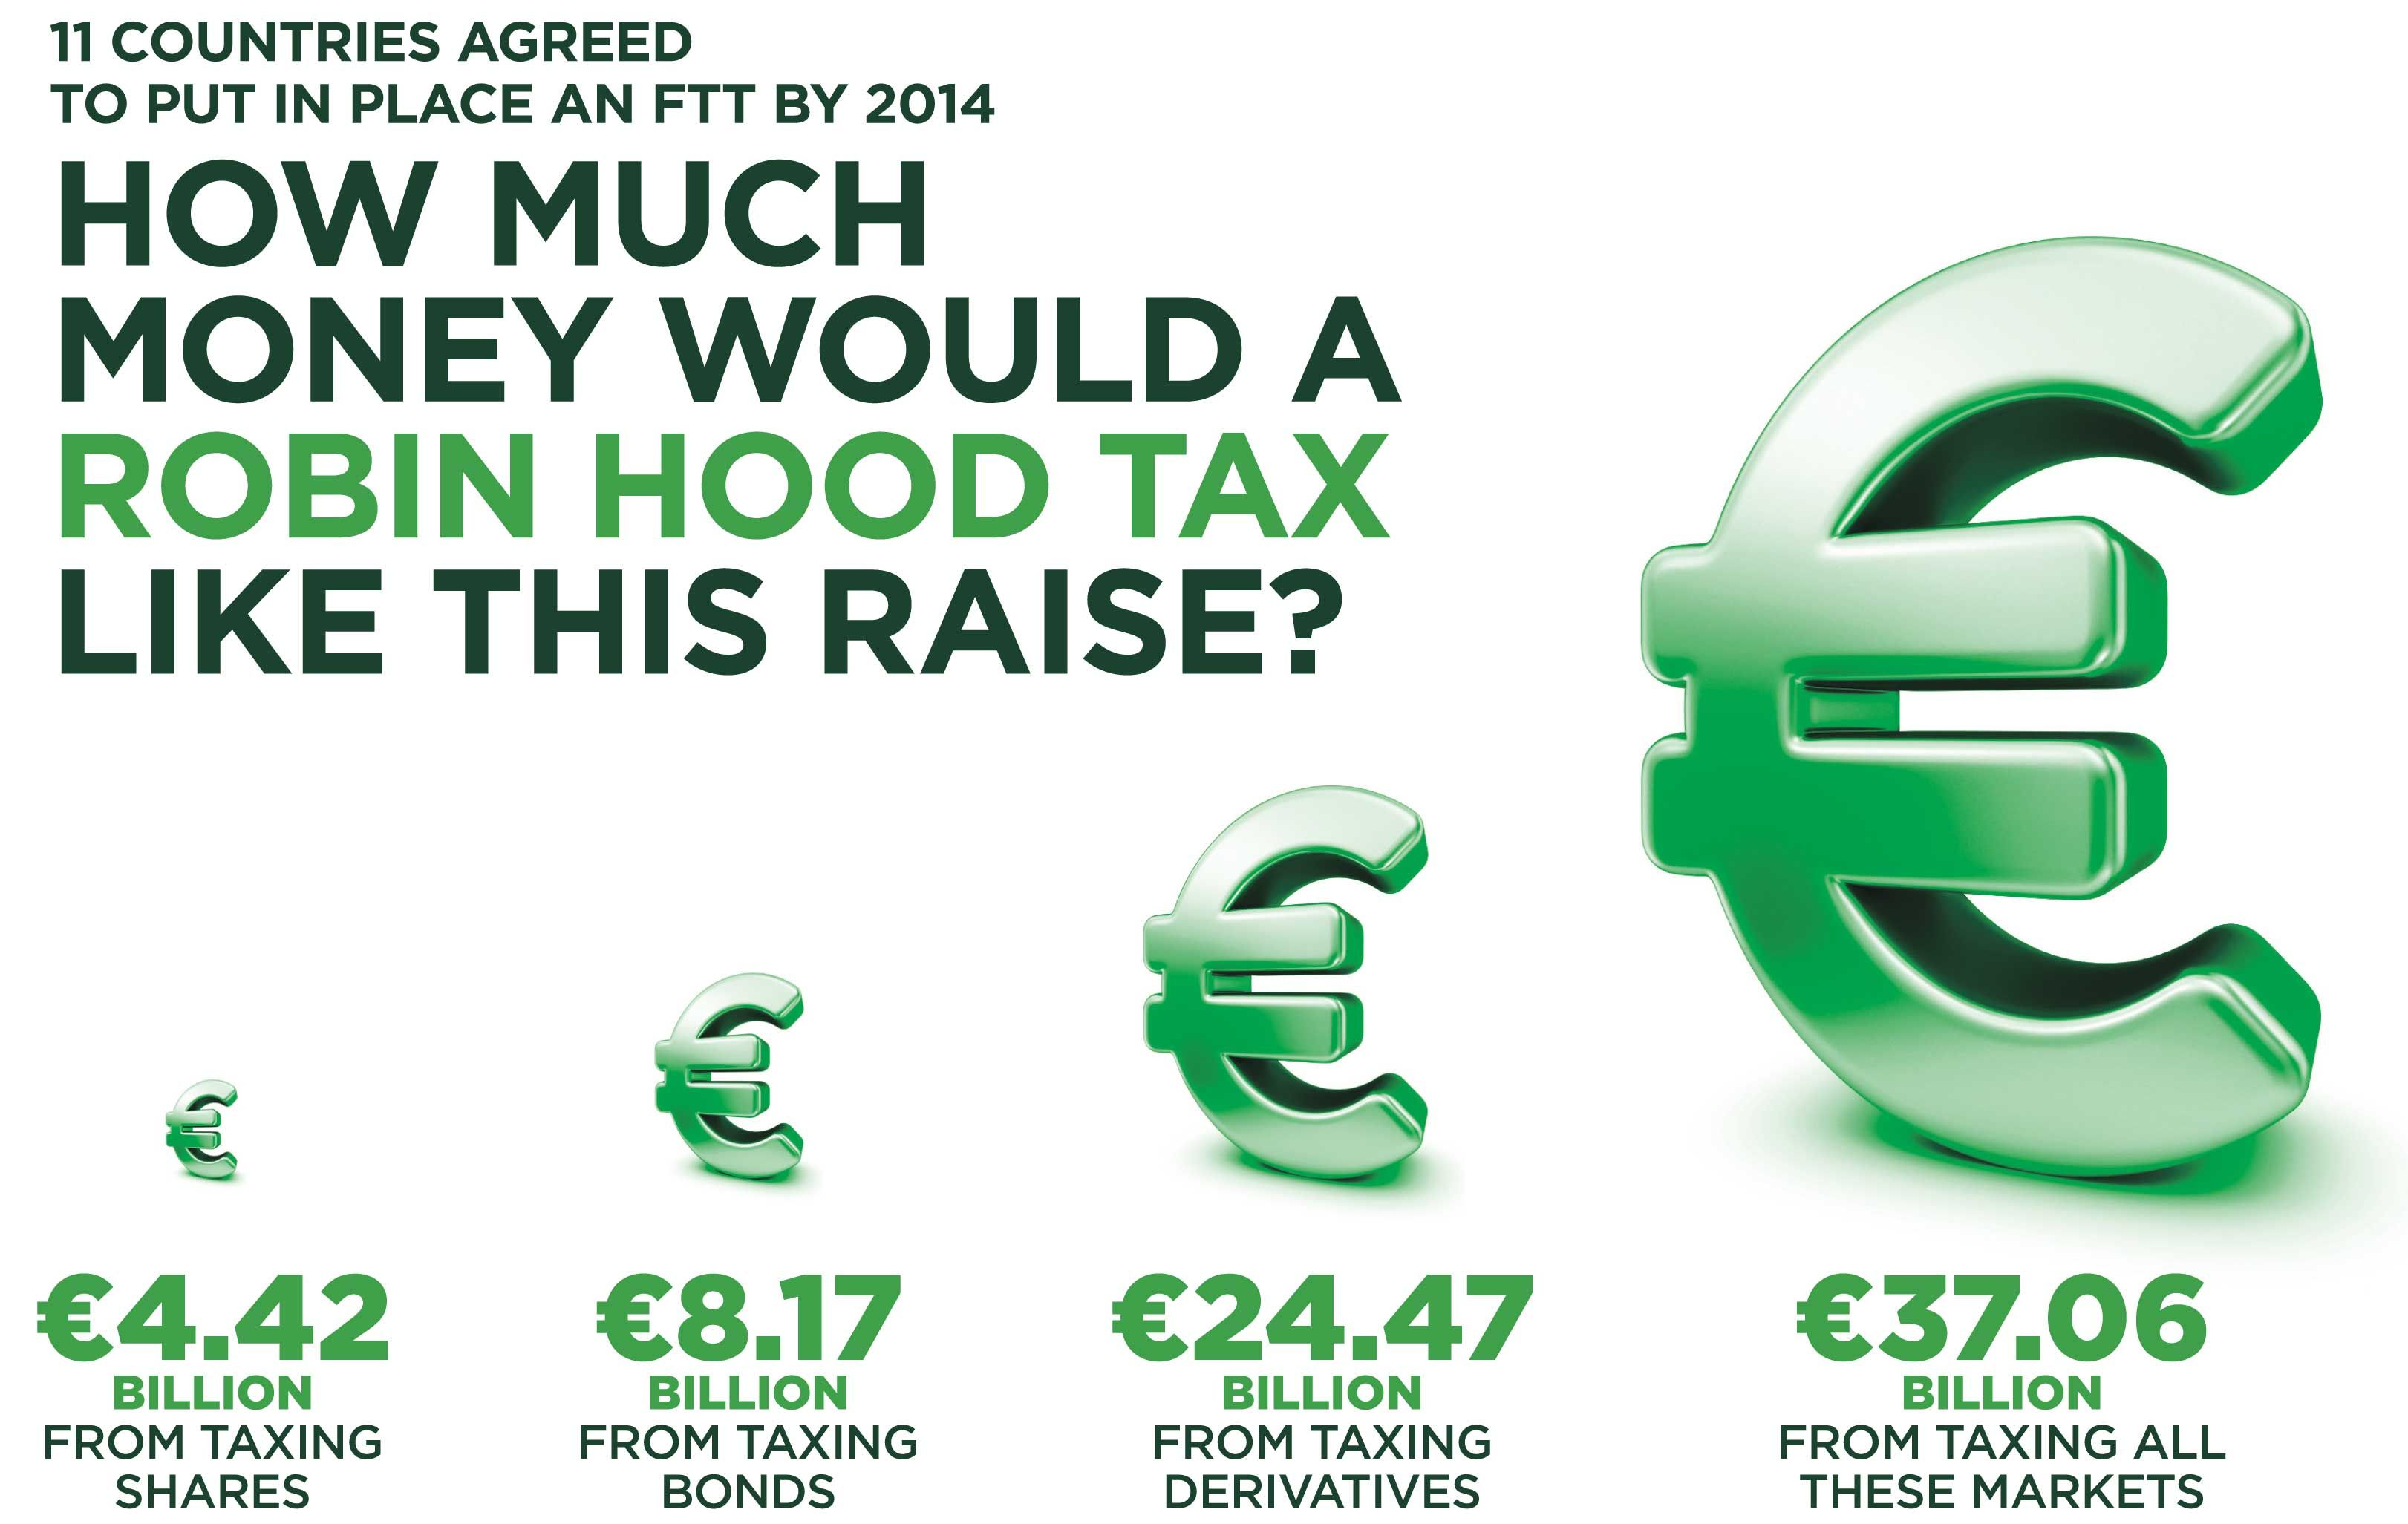 As part of the Robinhood Tax coalition, Oxfam is pushing the EU to back a wide-ranging Financial Transaction Tax. A broad-based tax offers a real opportunity to raise billions to help those at home and in poor countries who have been hit hard by the economic crisis and to combat climate change. Find out more www.oxfam.org/robinhoodtax